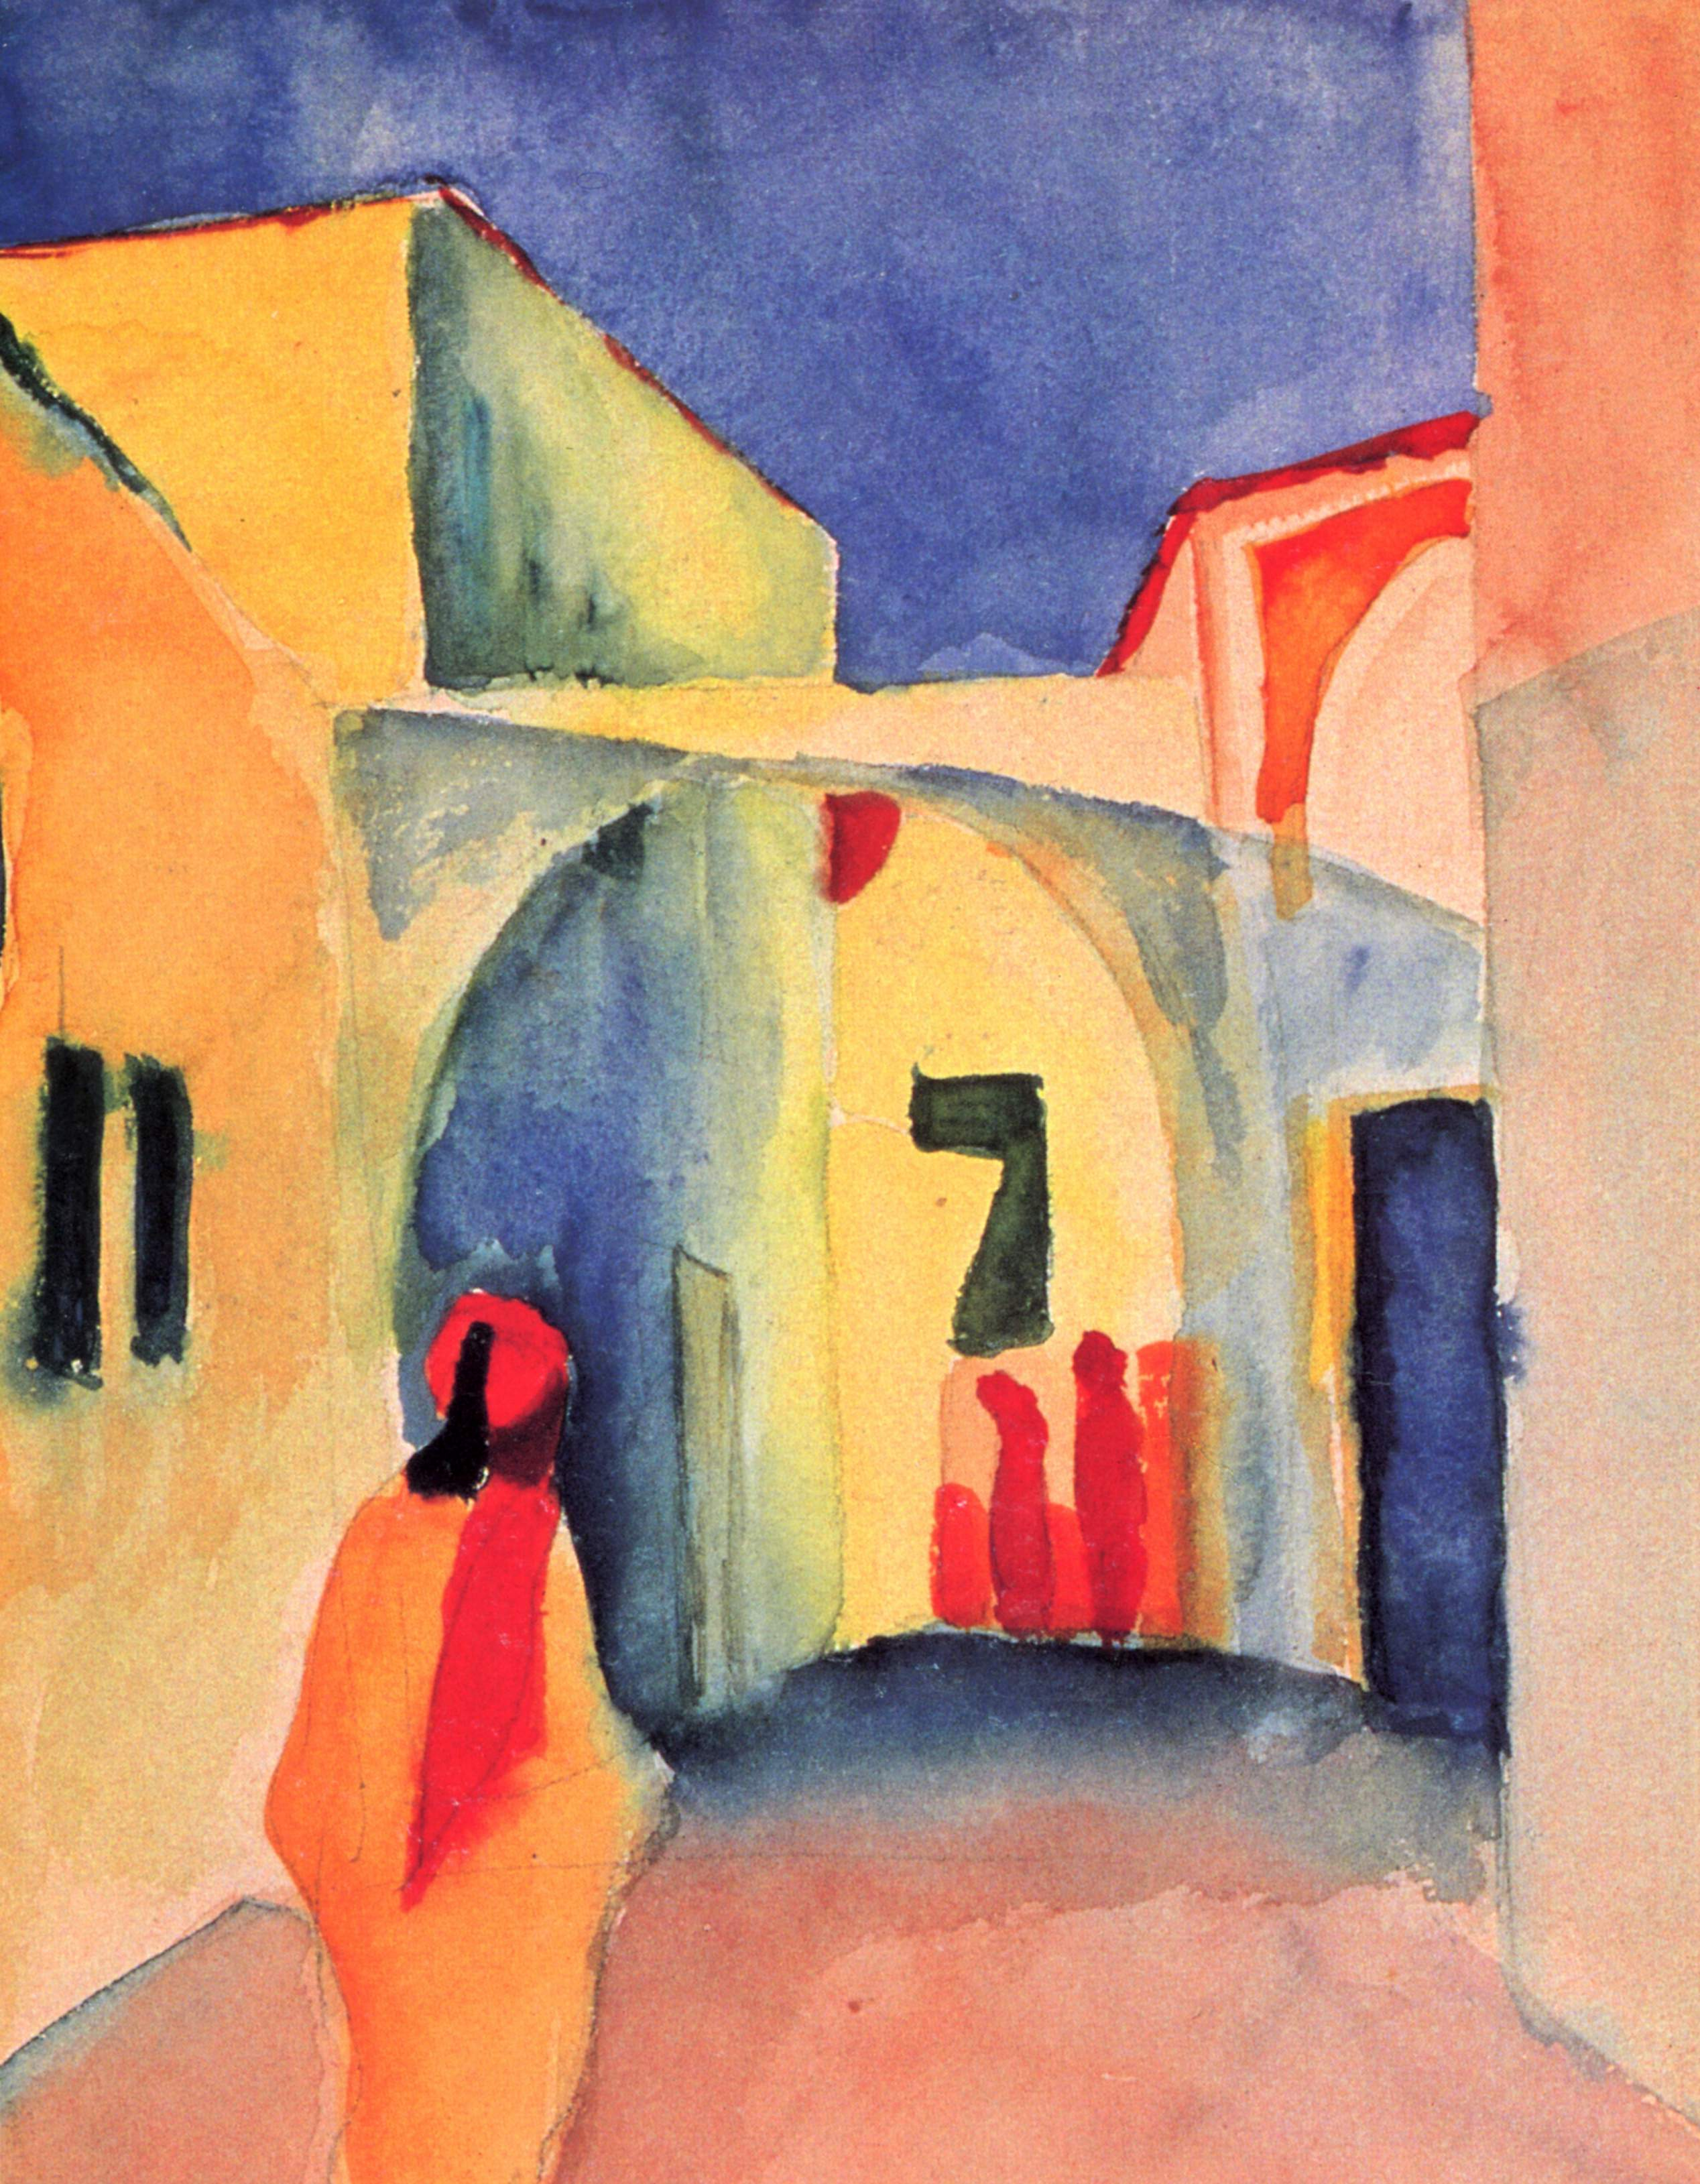 1910 August Macke Tegernsee Landscape Anagoria New House Art Poster Reproduction